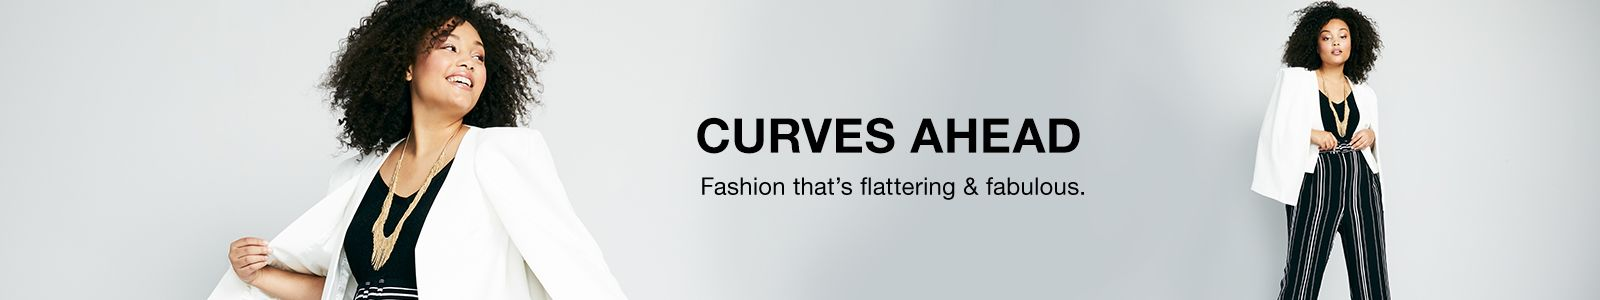 Curves Ahead, Fashion that's flattering and fabulous